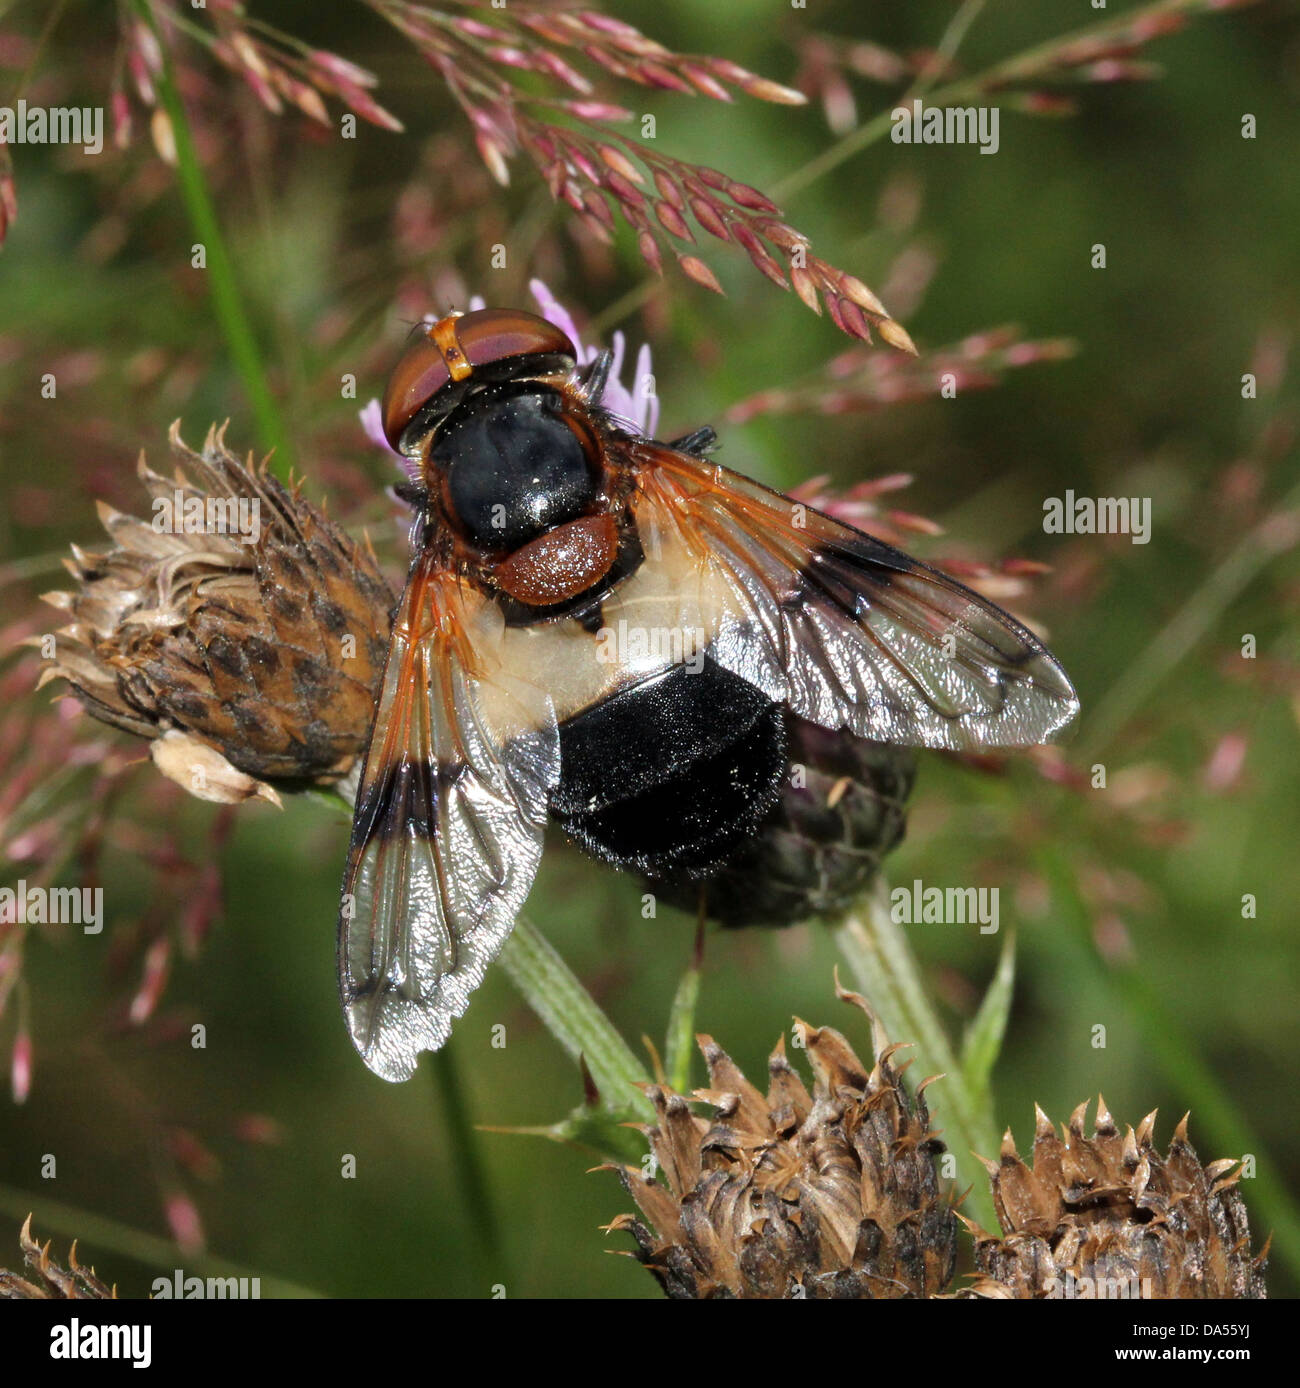 Detailed macro of  Volucella pellucens, a large European hoverfly variety posing on a leaf - Stock Image